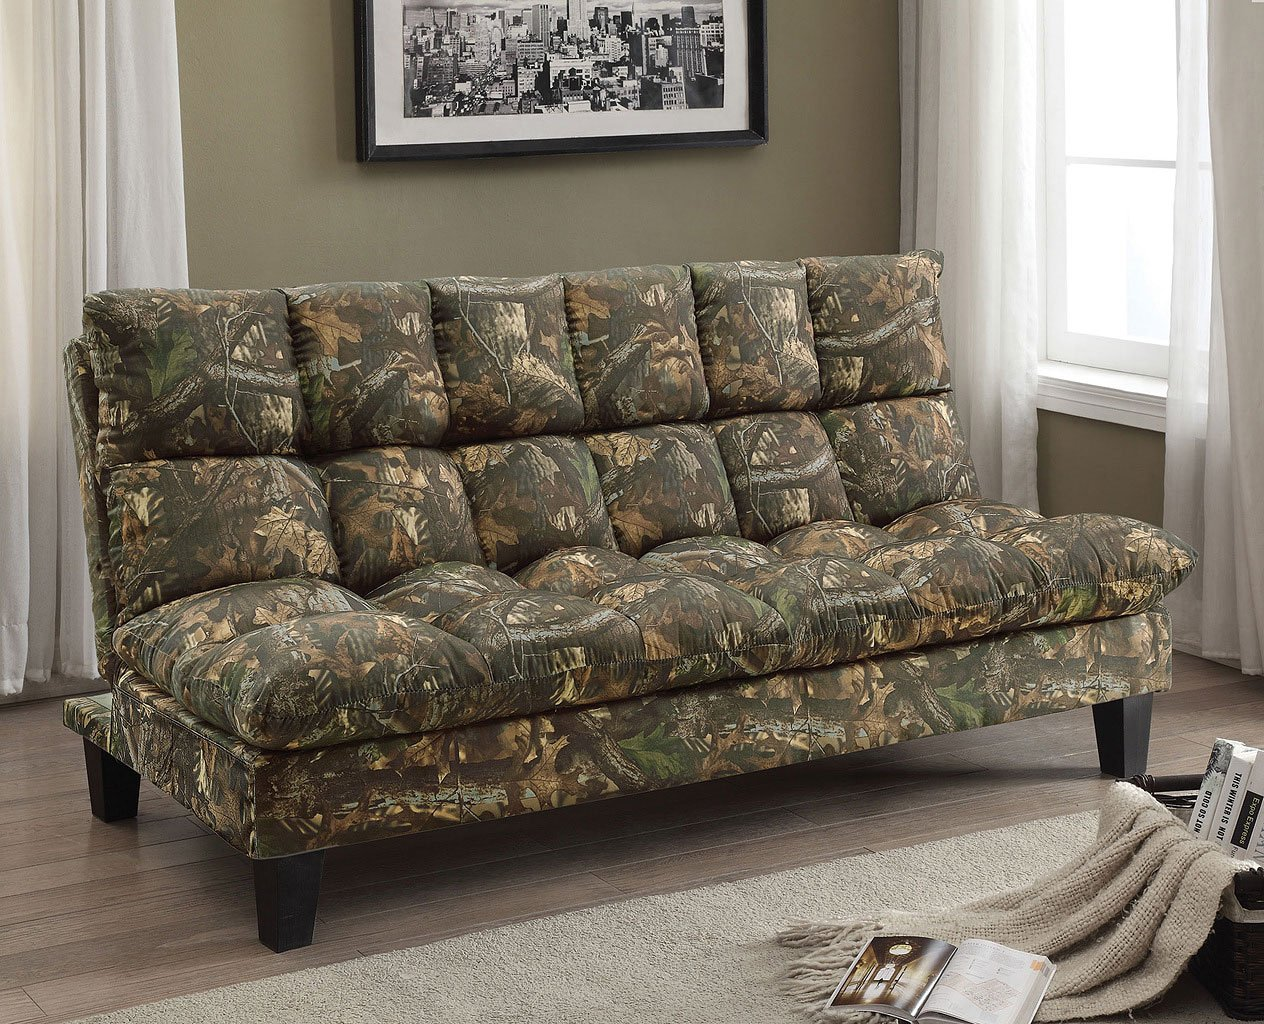 Camo Adjustable Sofa Bed Autumn Futons Living Room